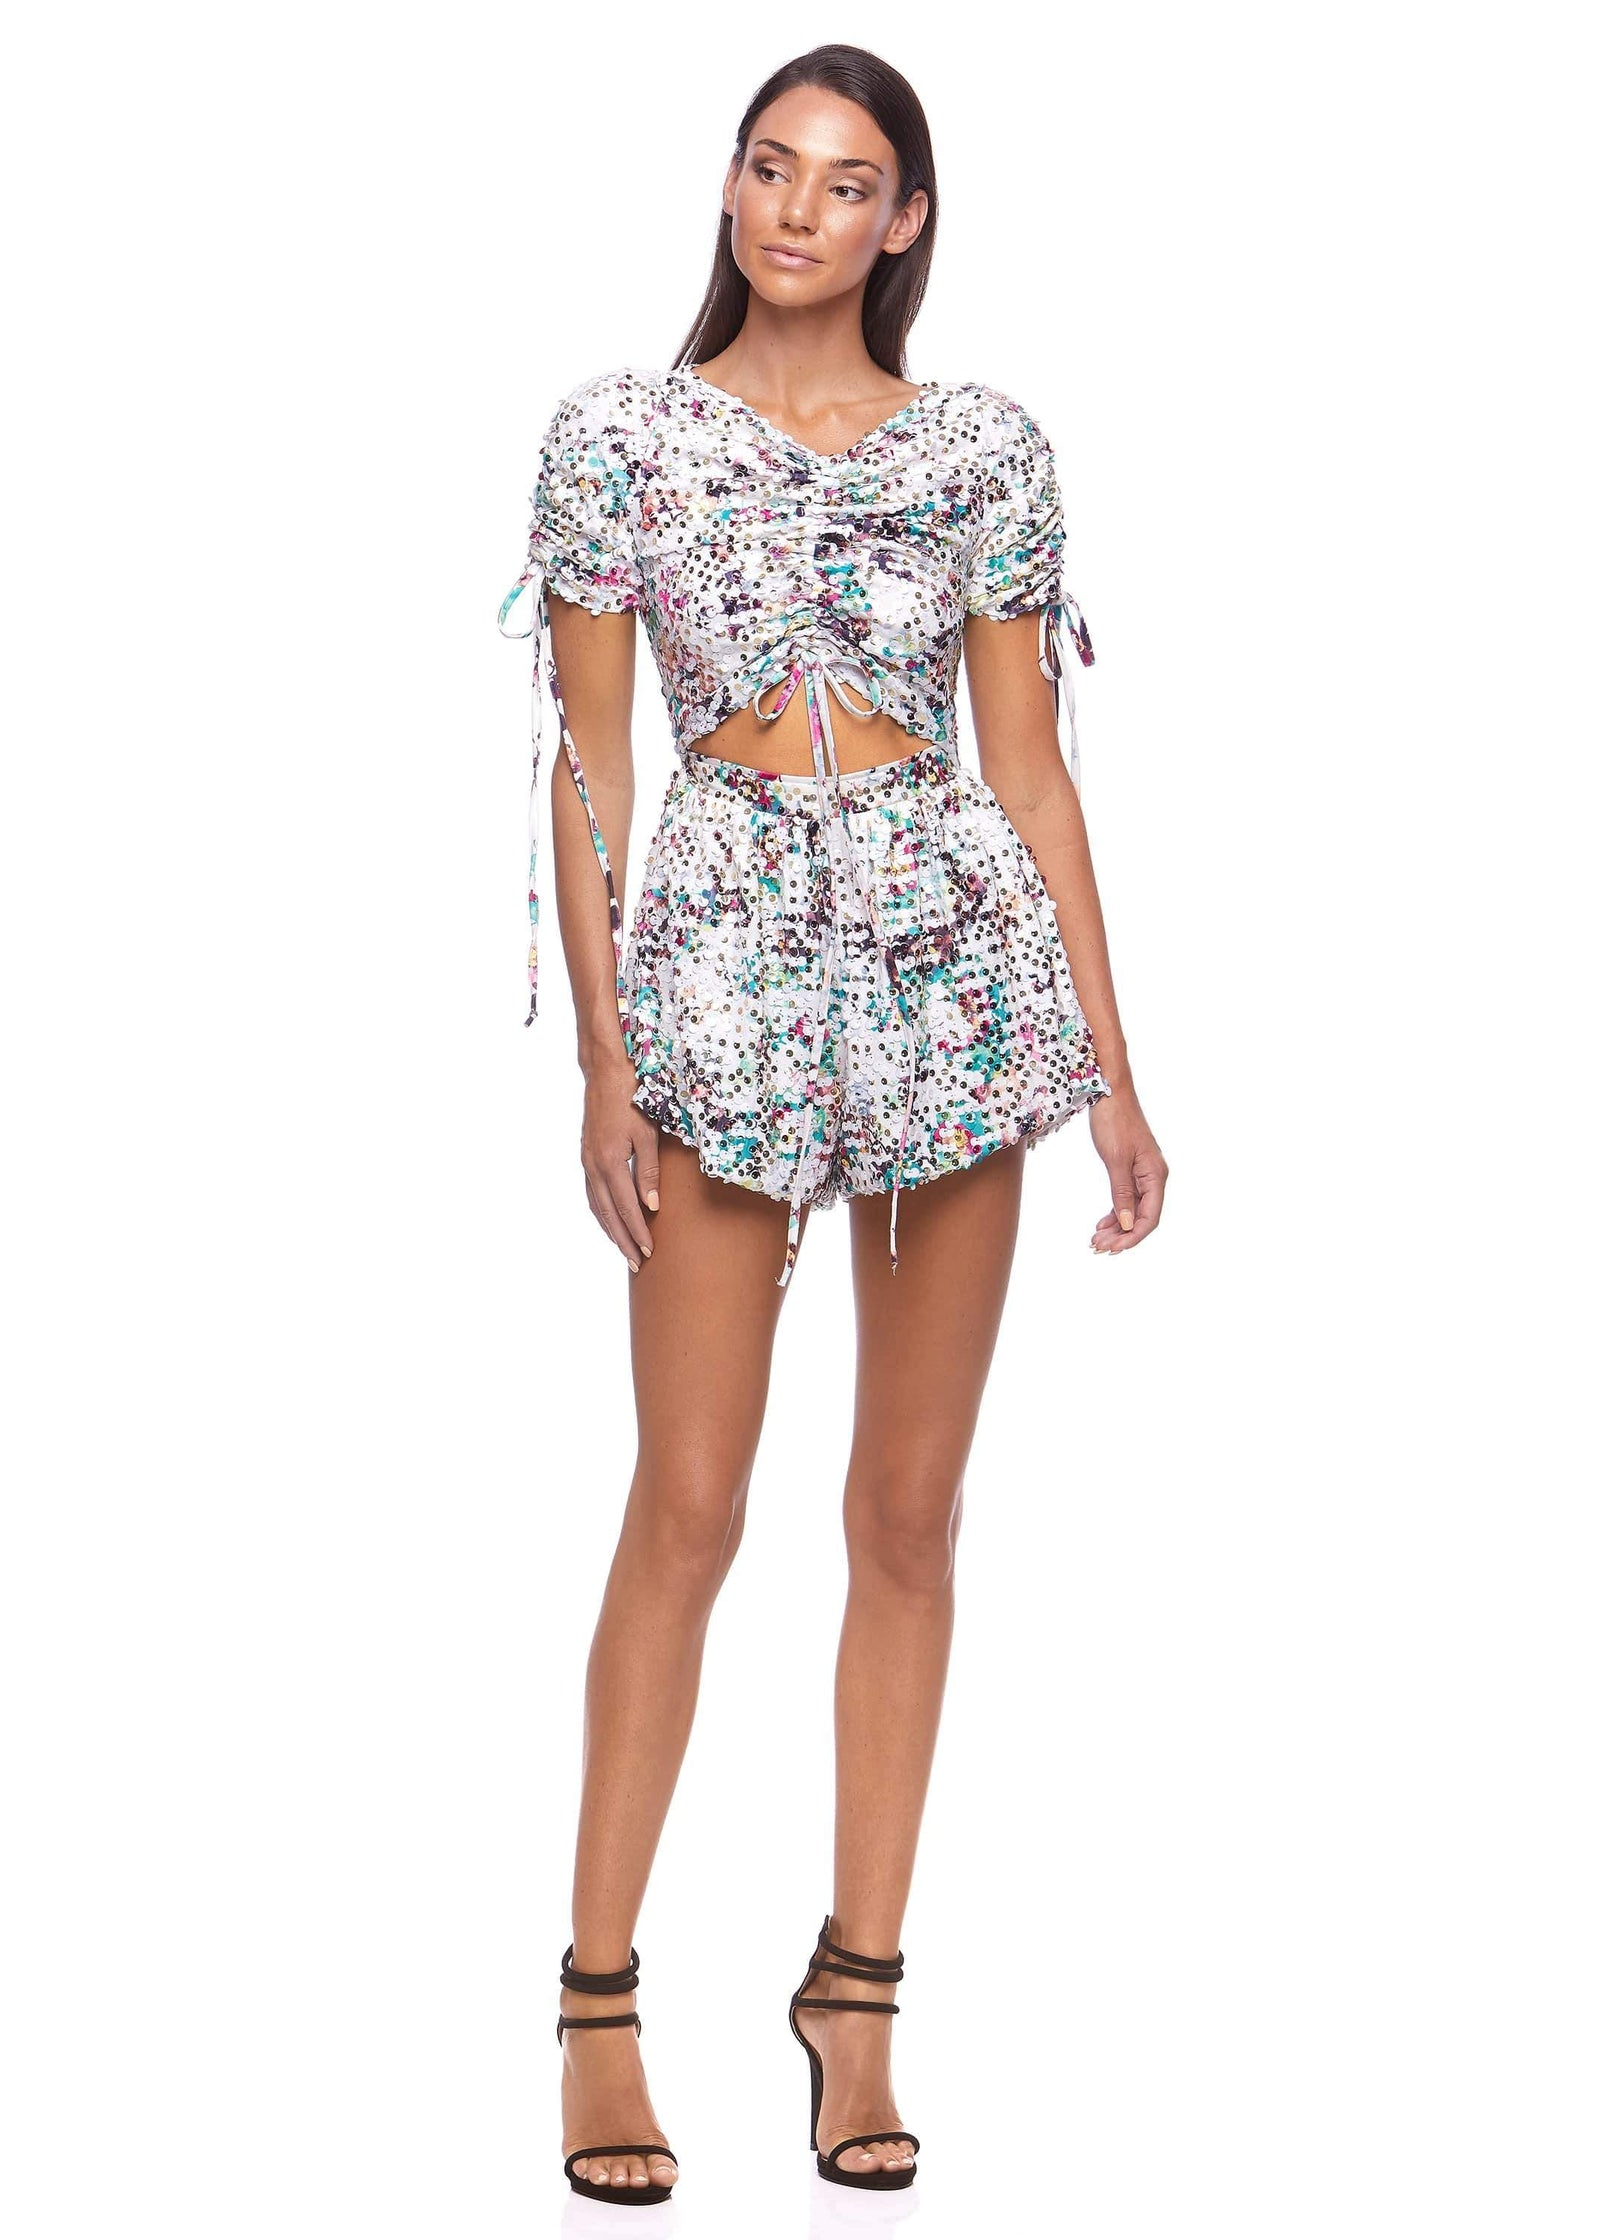 Scarlette Playsuit - ELIYA THE LABEL